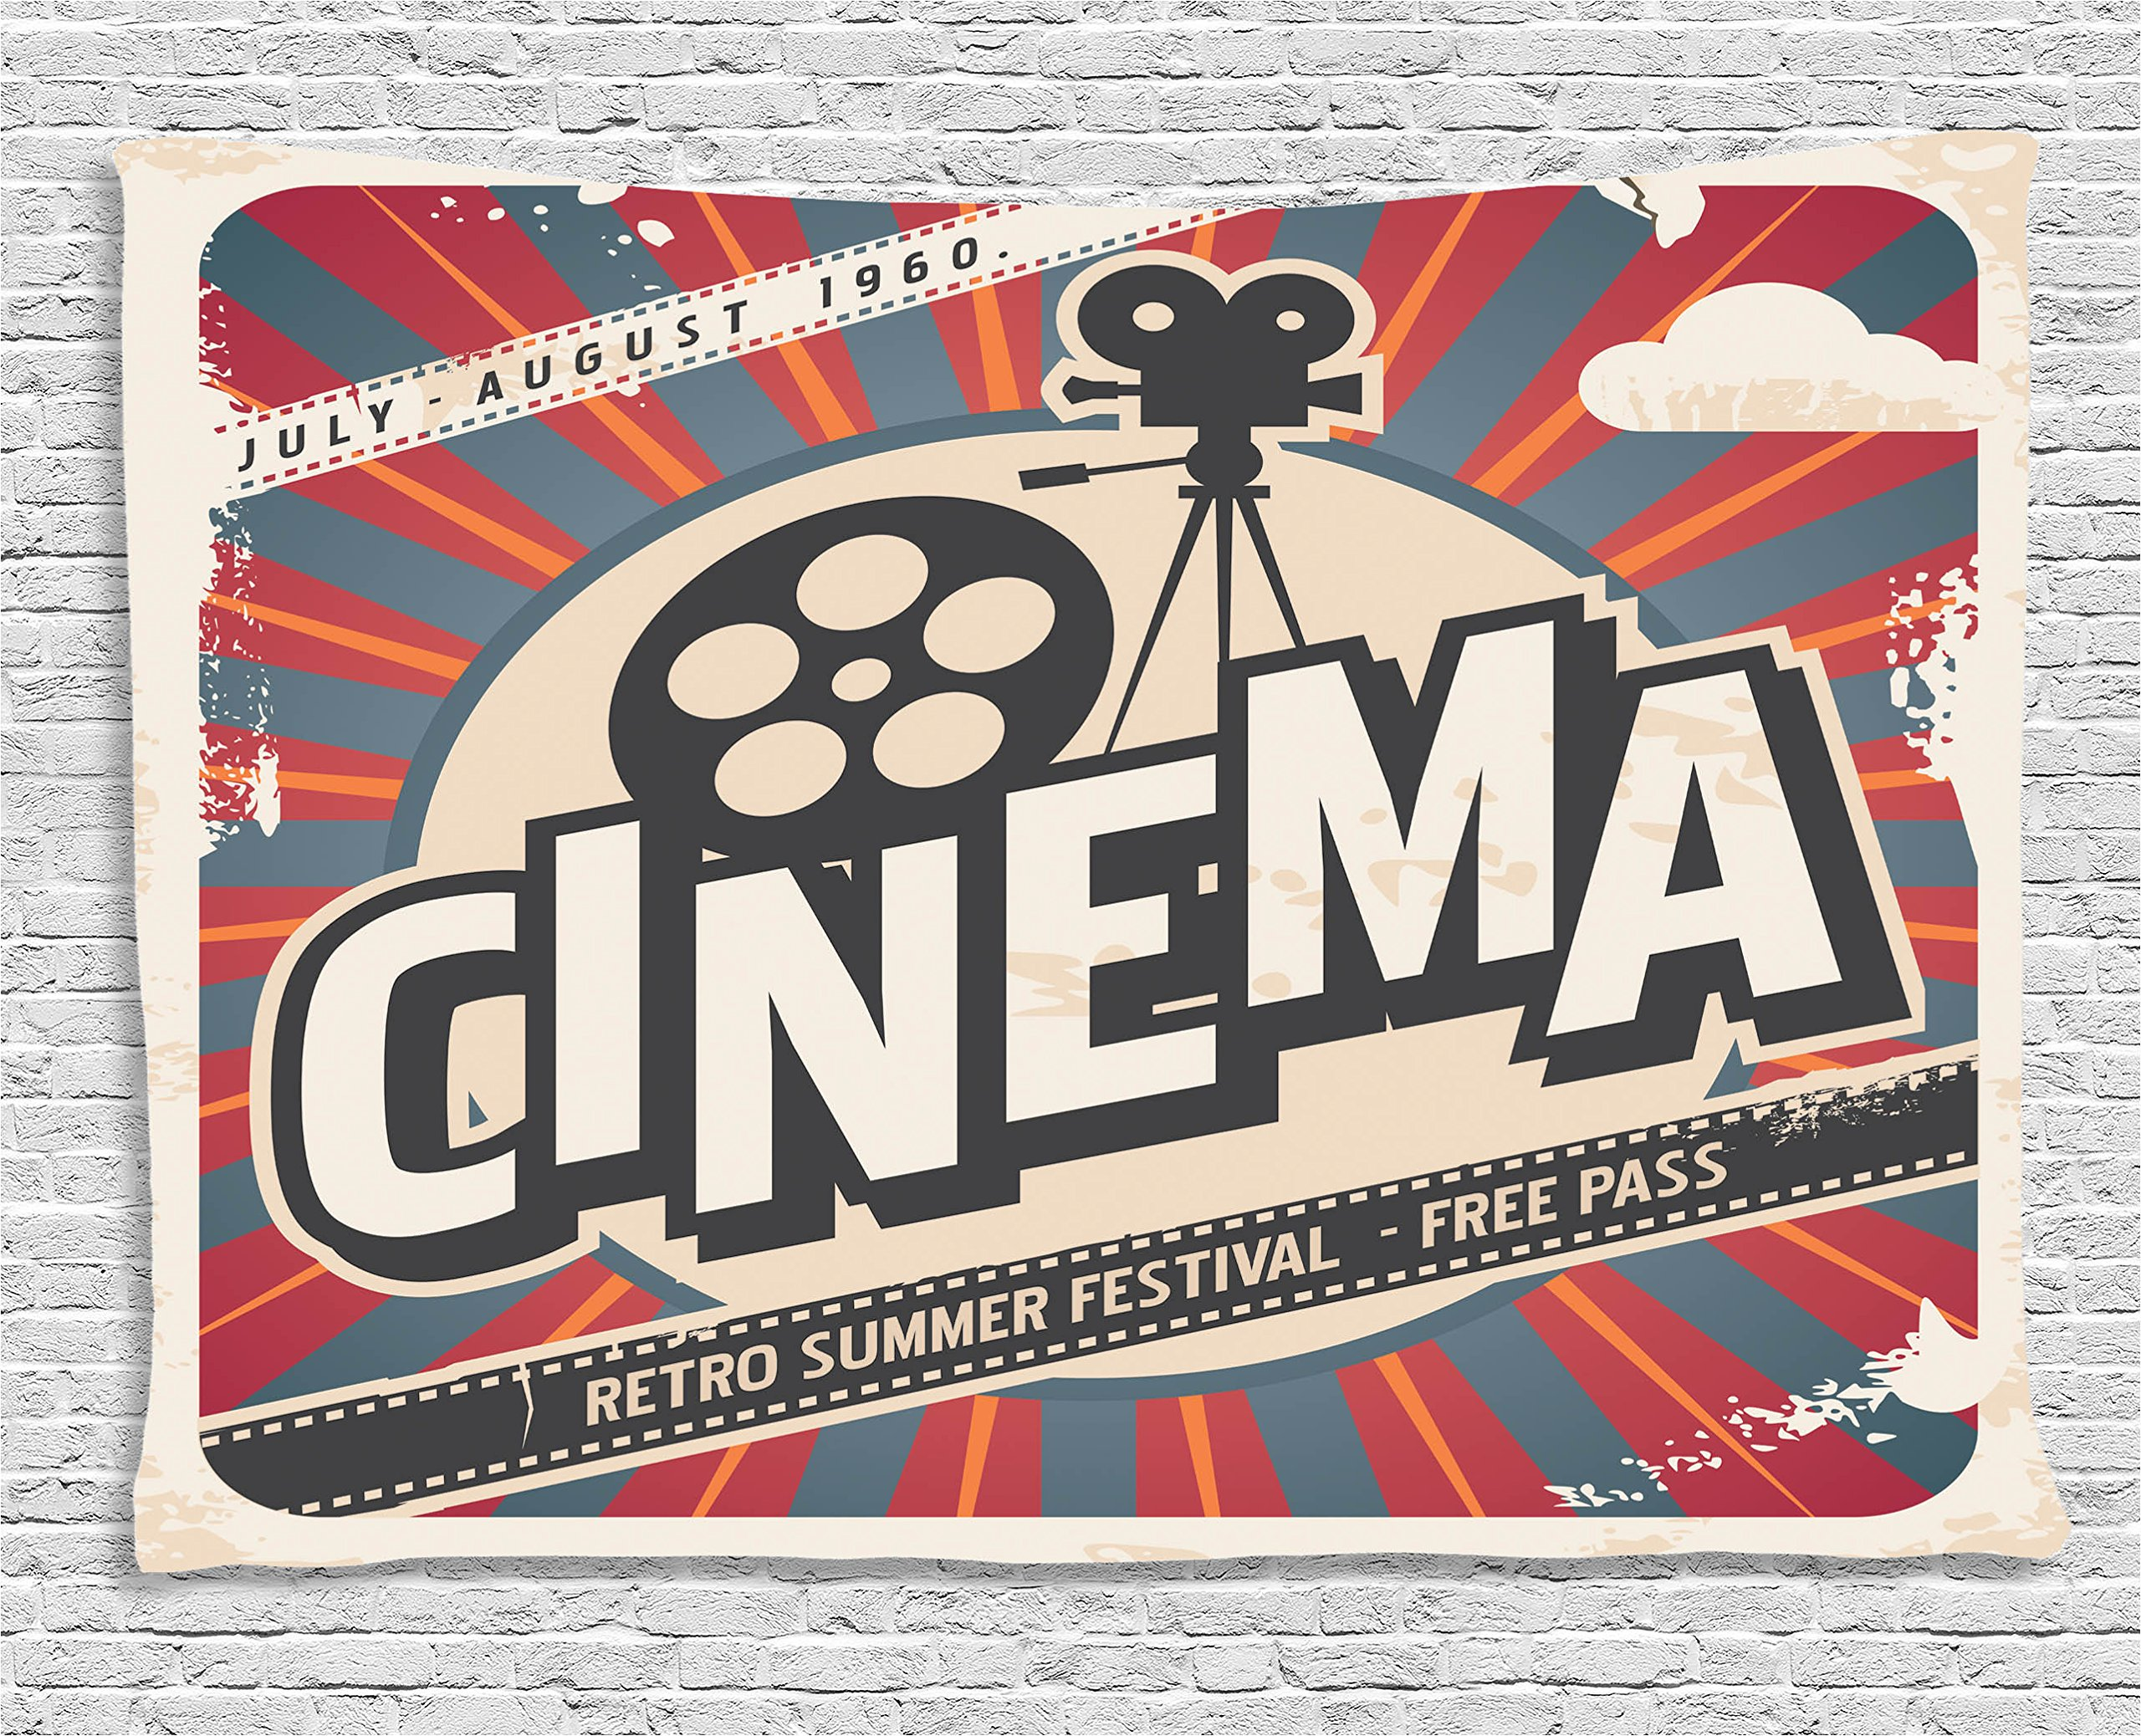 Ambesonne Vintage Decor Tapestry, Retro Cinema Movie Vintage Paper Texture Hollywood Stars Decorative Design, Wall Hanging for Bedroom Living Room Dorm, 60 W X 40 L, Beige Amber Charcoal and Grey